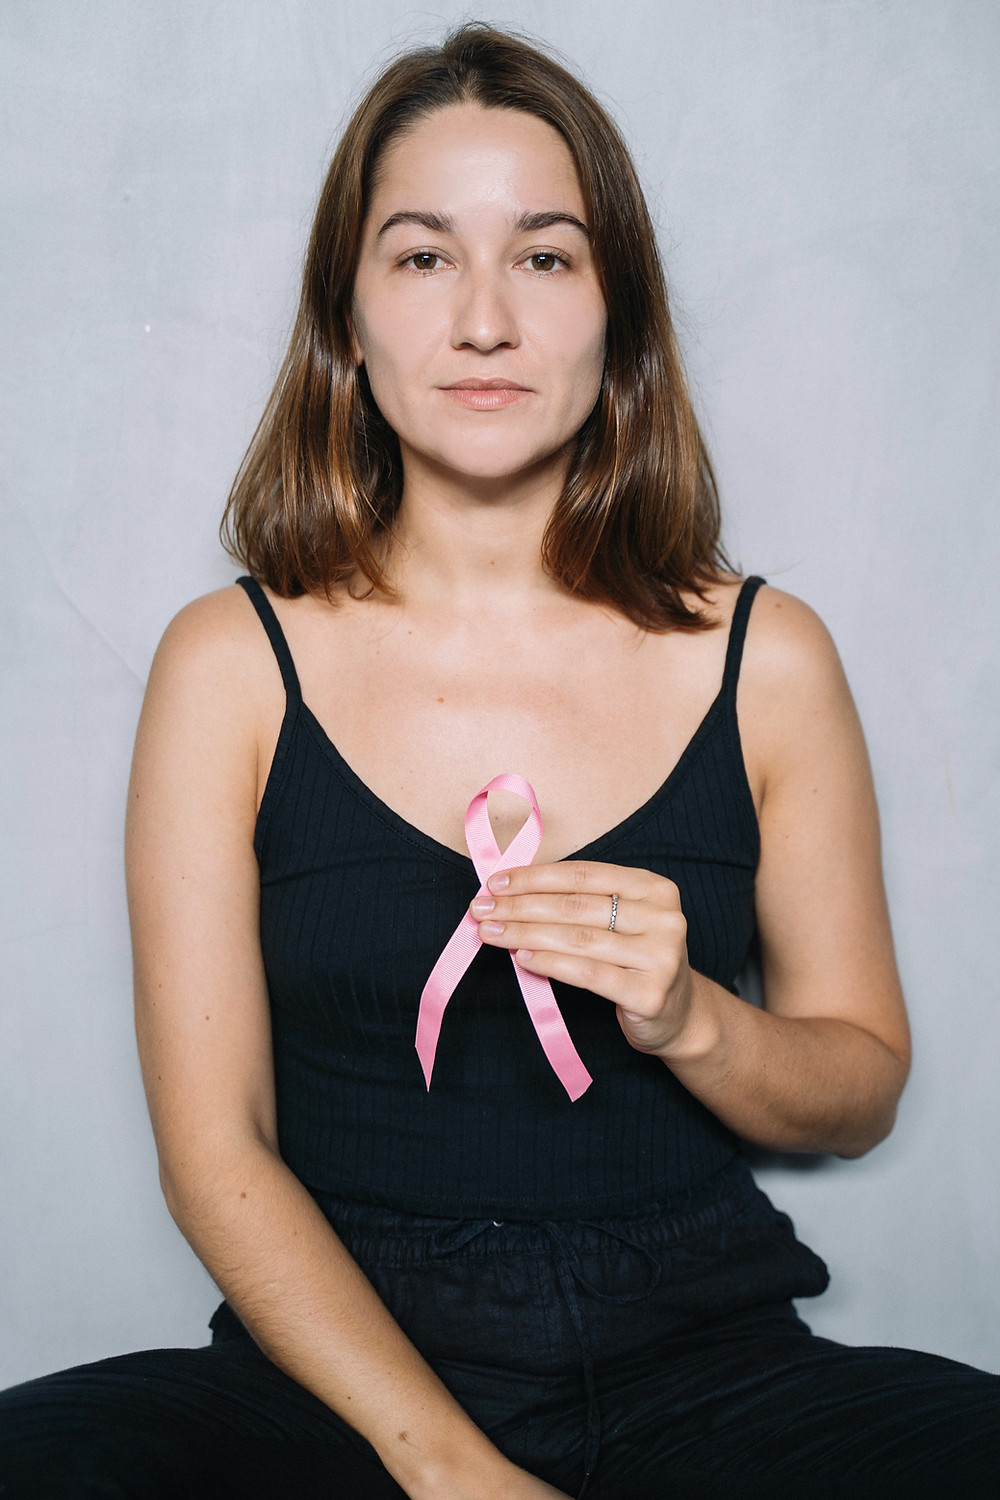 What age should women have their first mammogram?